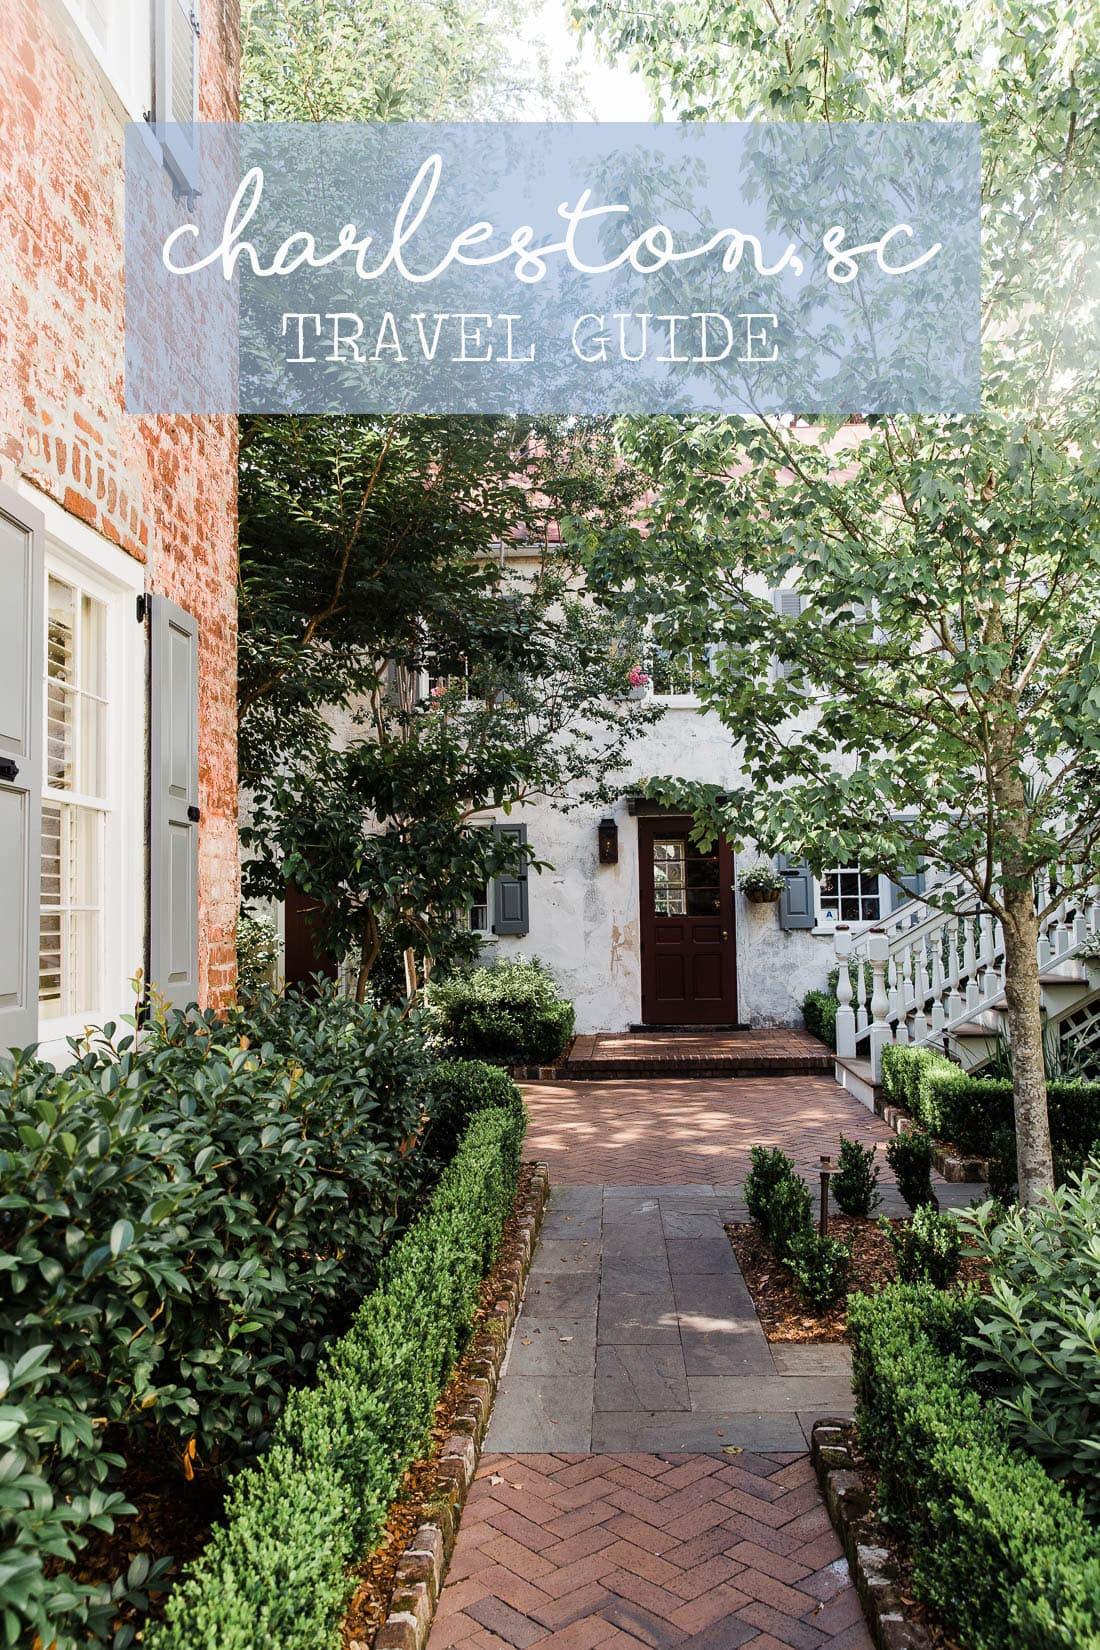 0d15ae1e43a CHARLESTON TRAVEL GUIDE - Styled Snapshots